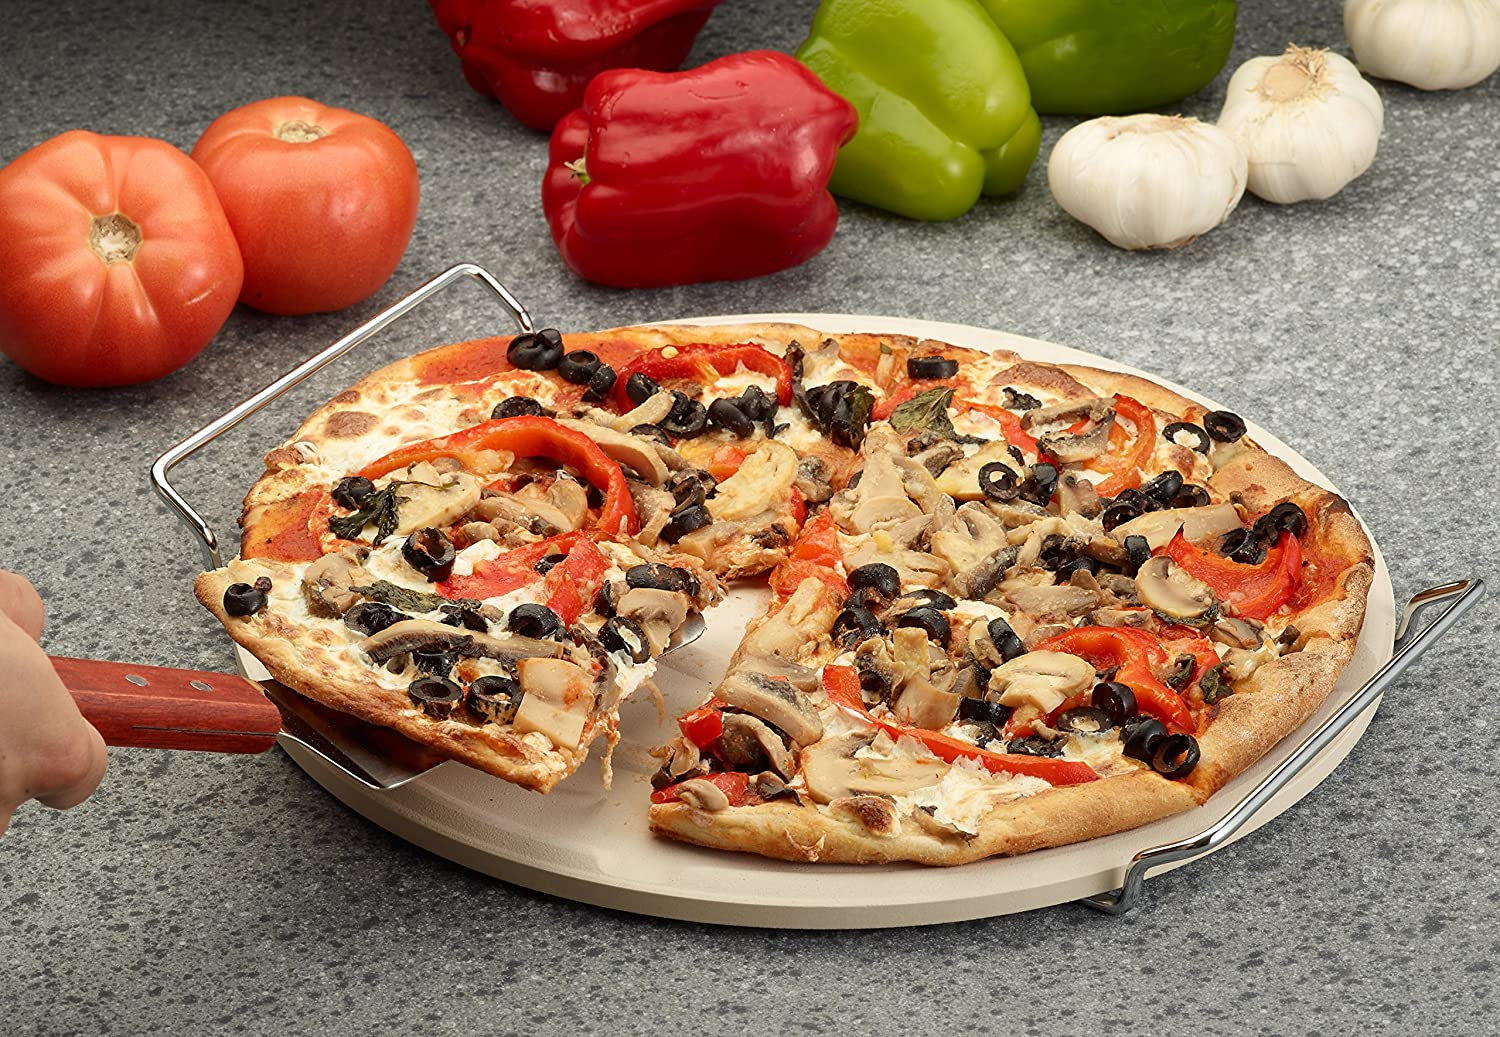 13-Inches Diameter HIC/'s Pizza Baking Stone with Serving Rack Natural Ceramic Stoneware